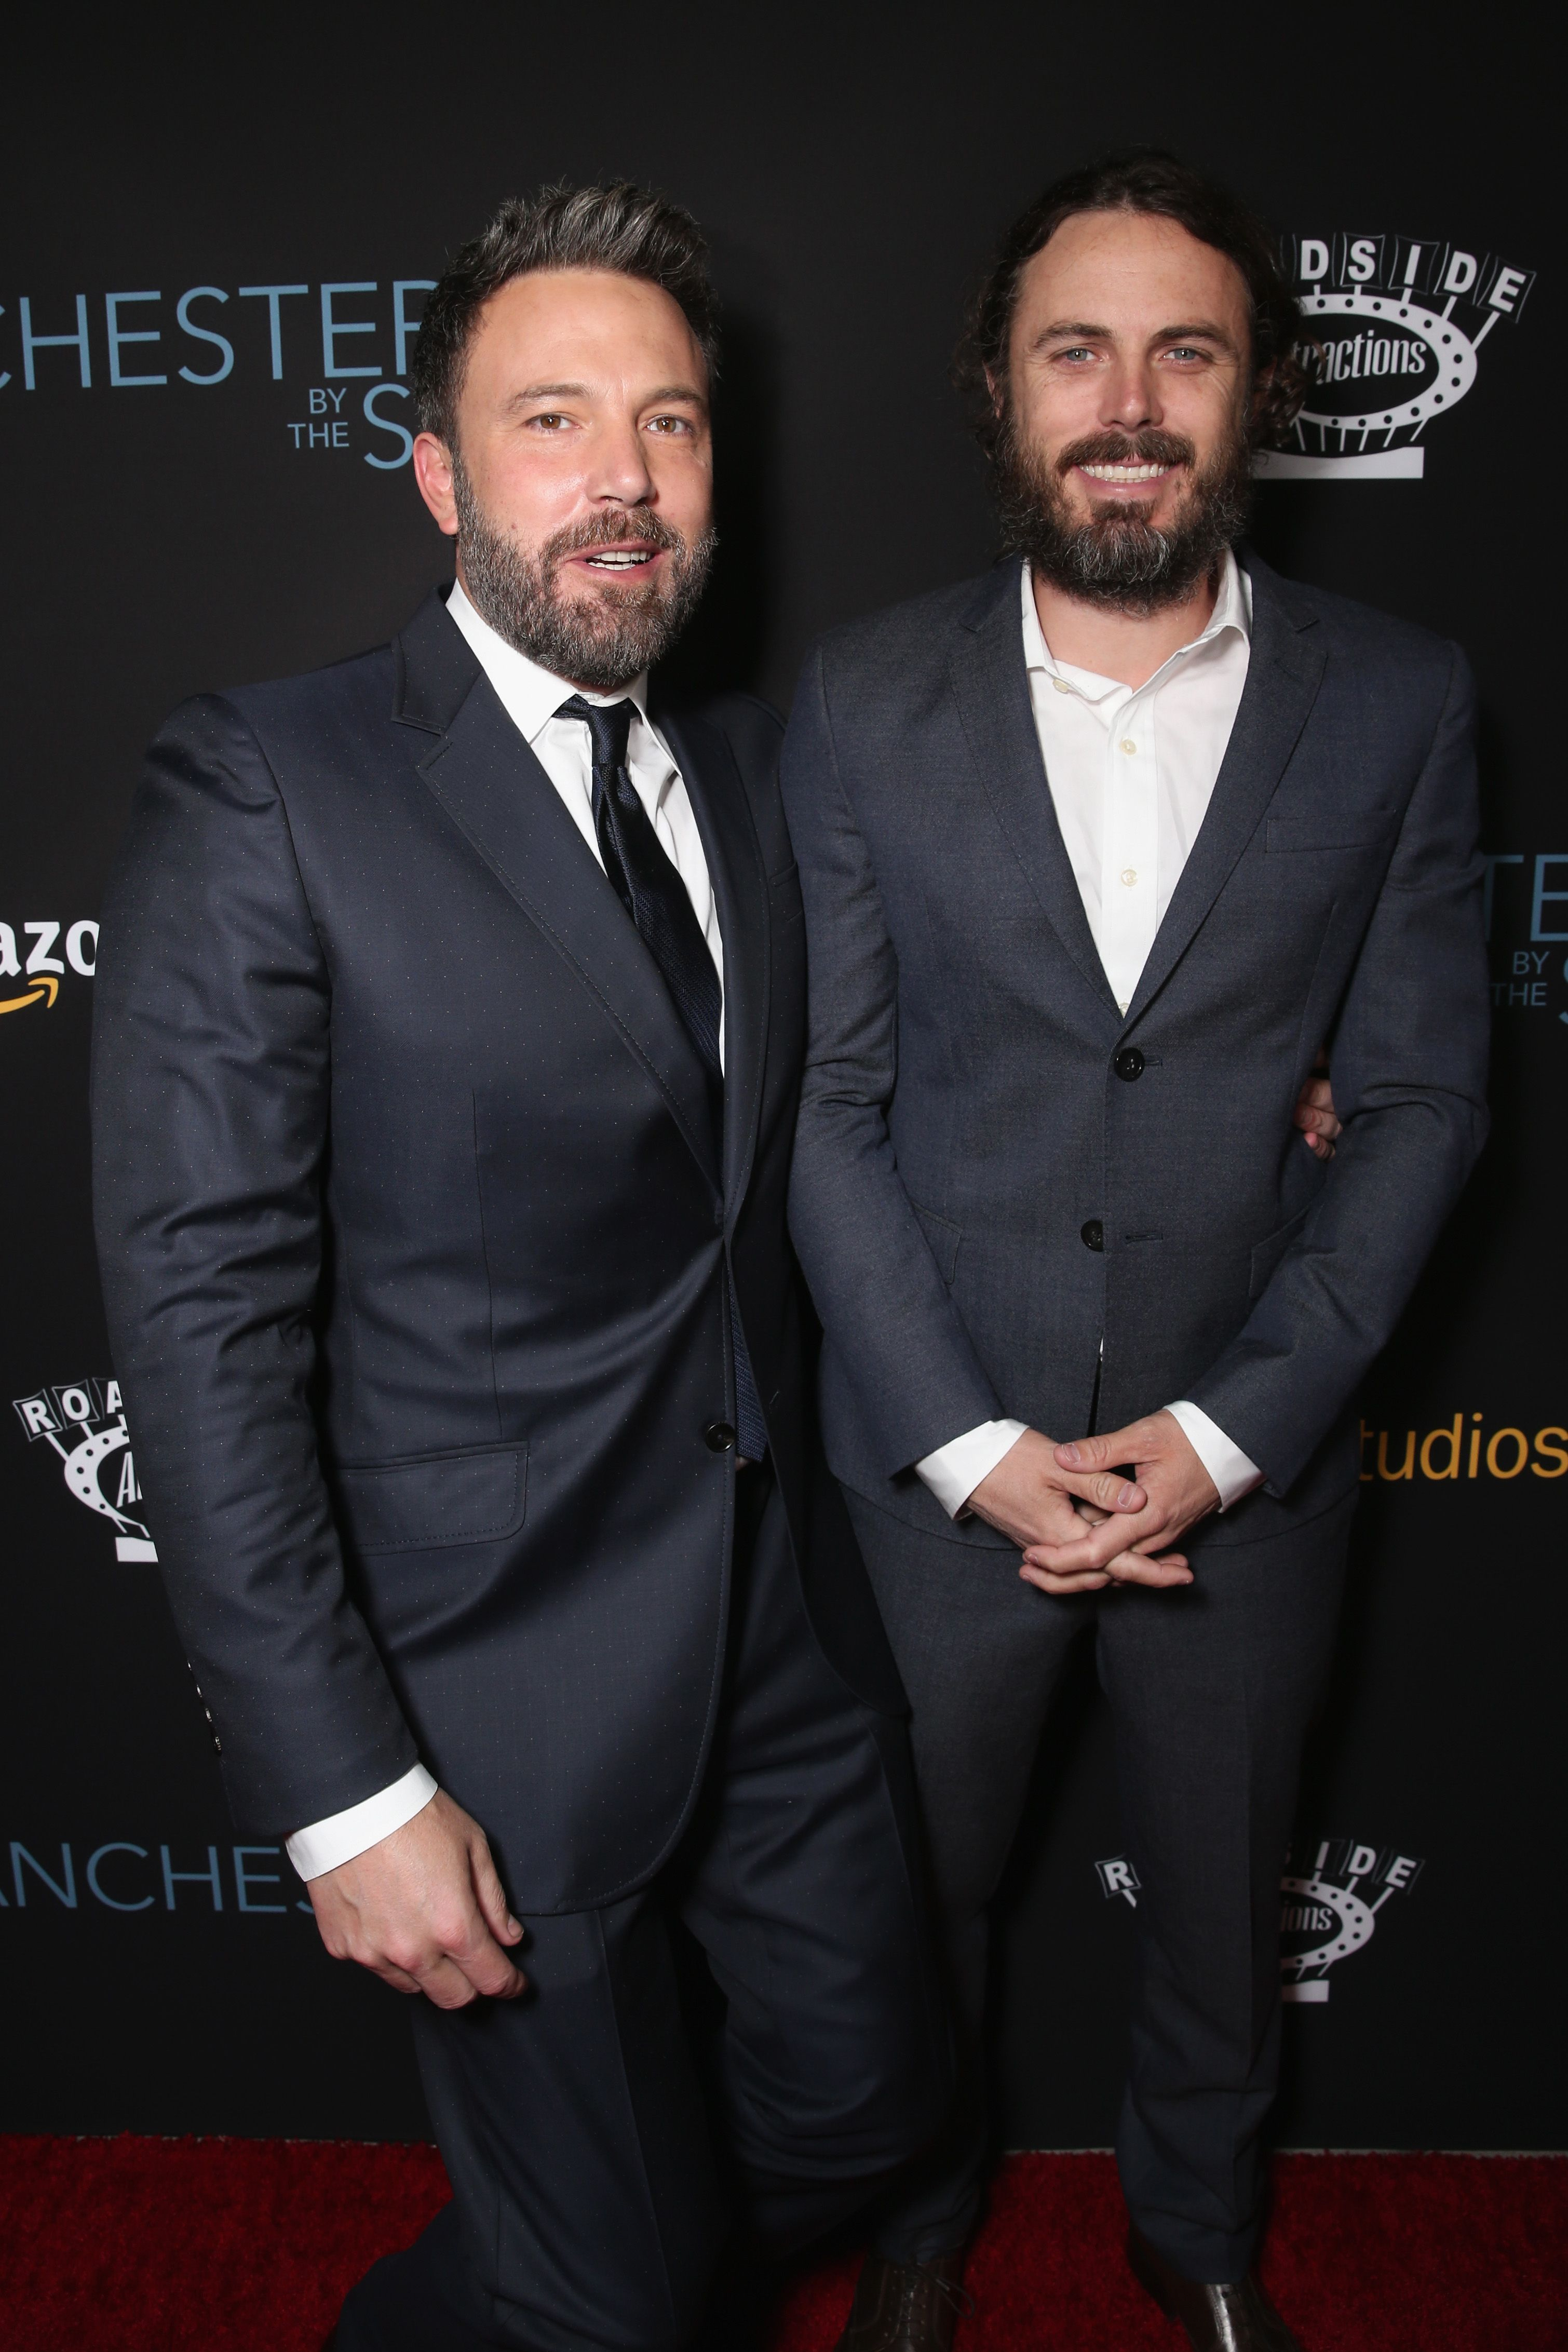 Ben Affleck Is Trying To Get Sober For His Family, His